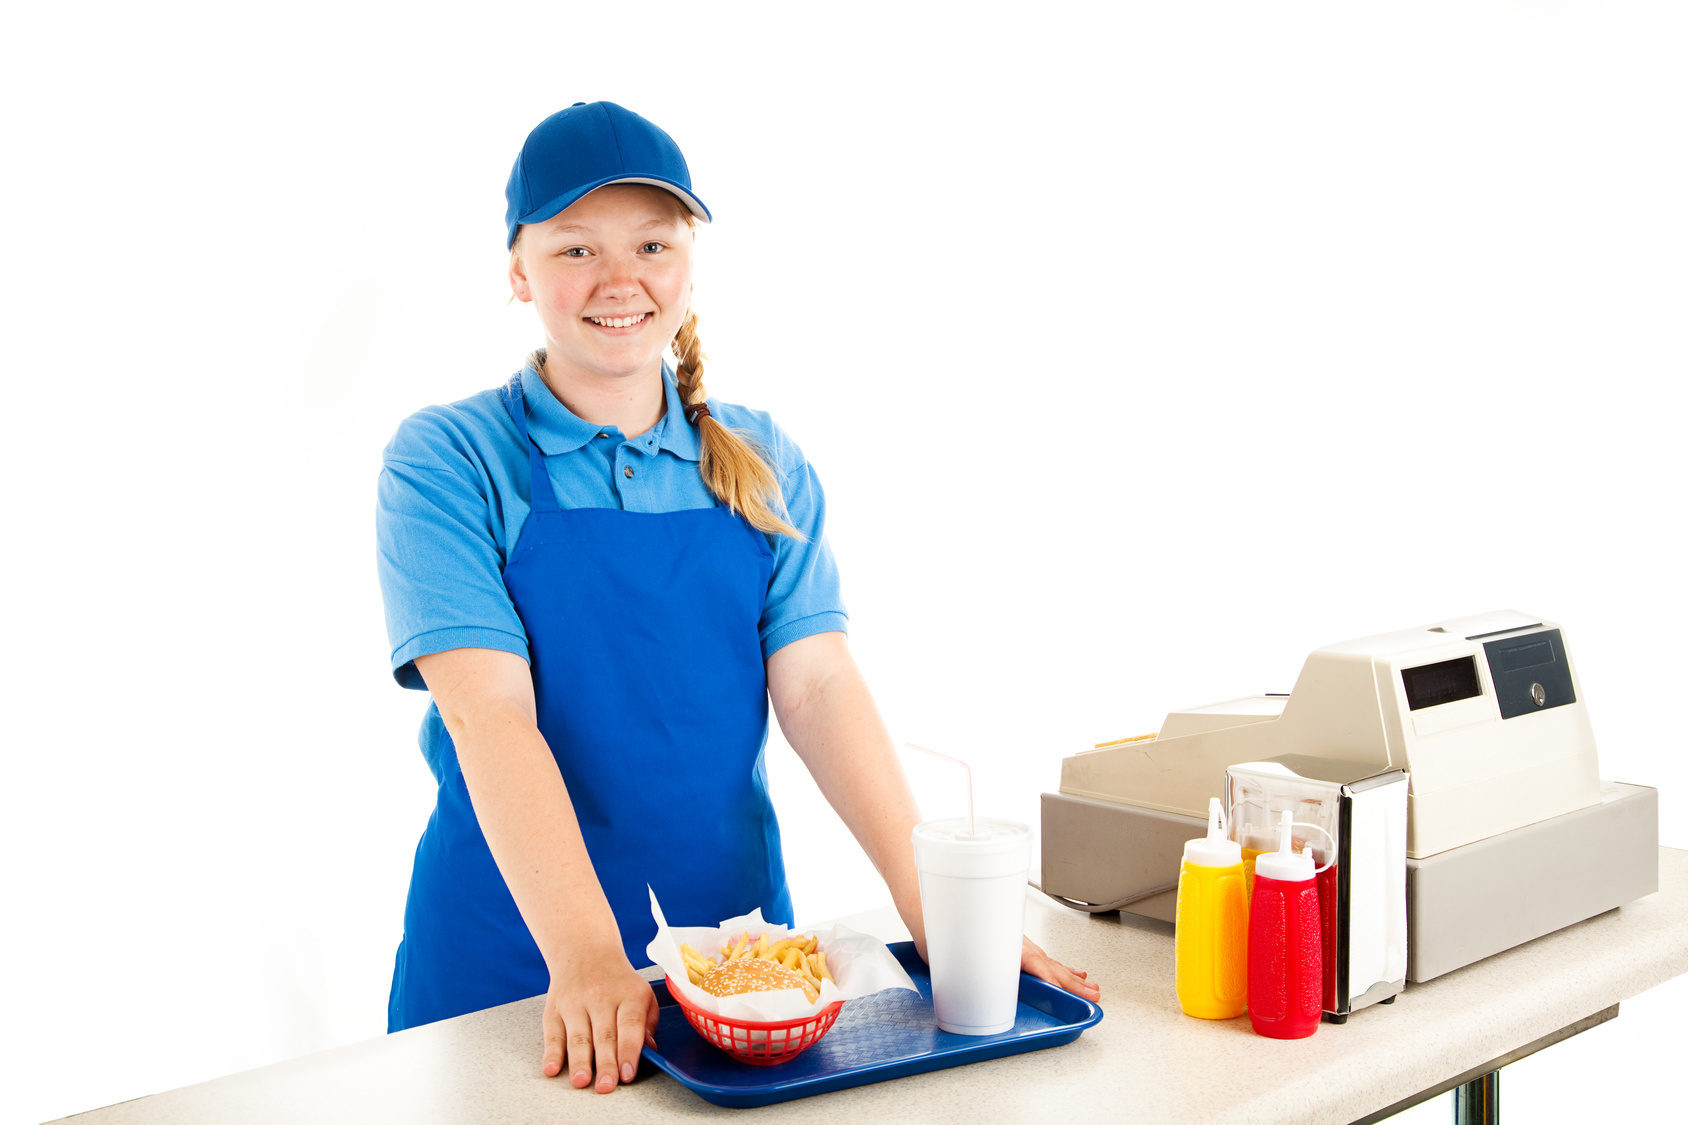 Customer Service Officer Fast Food